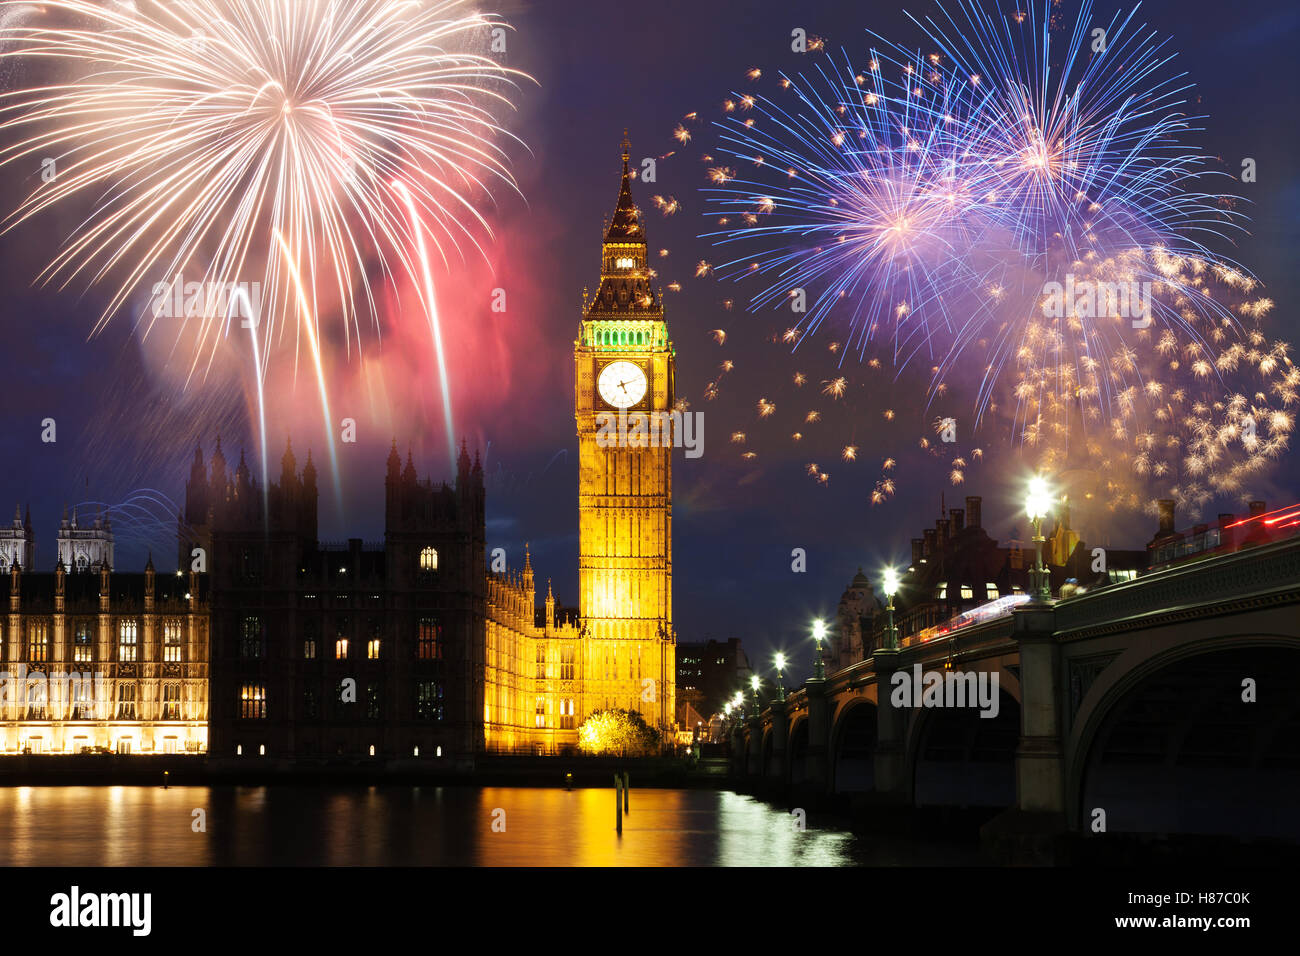 explosive fireworks display around big ben new years eve in the city celebration background